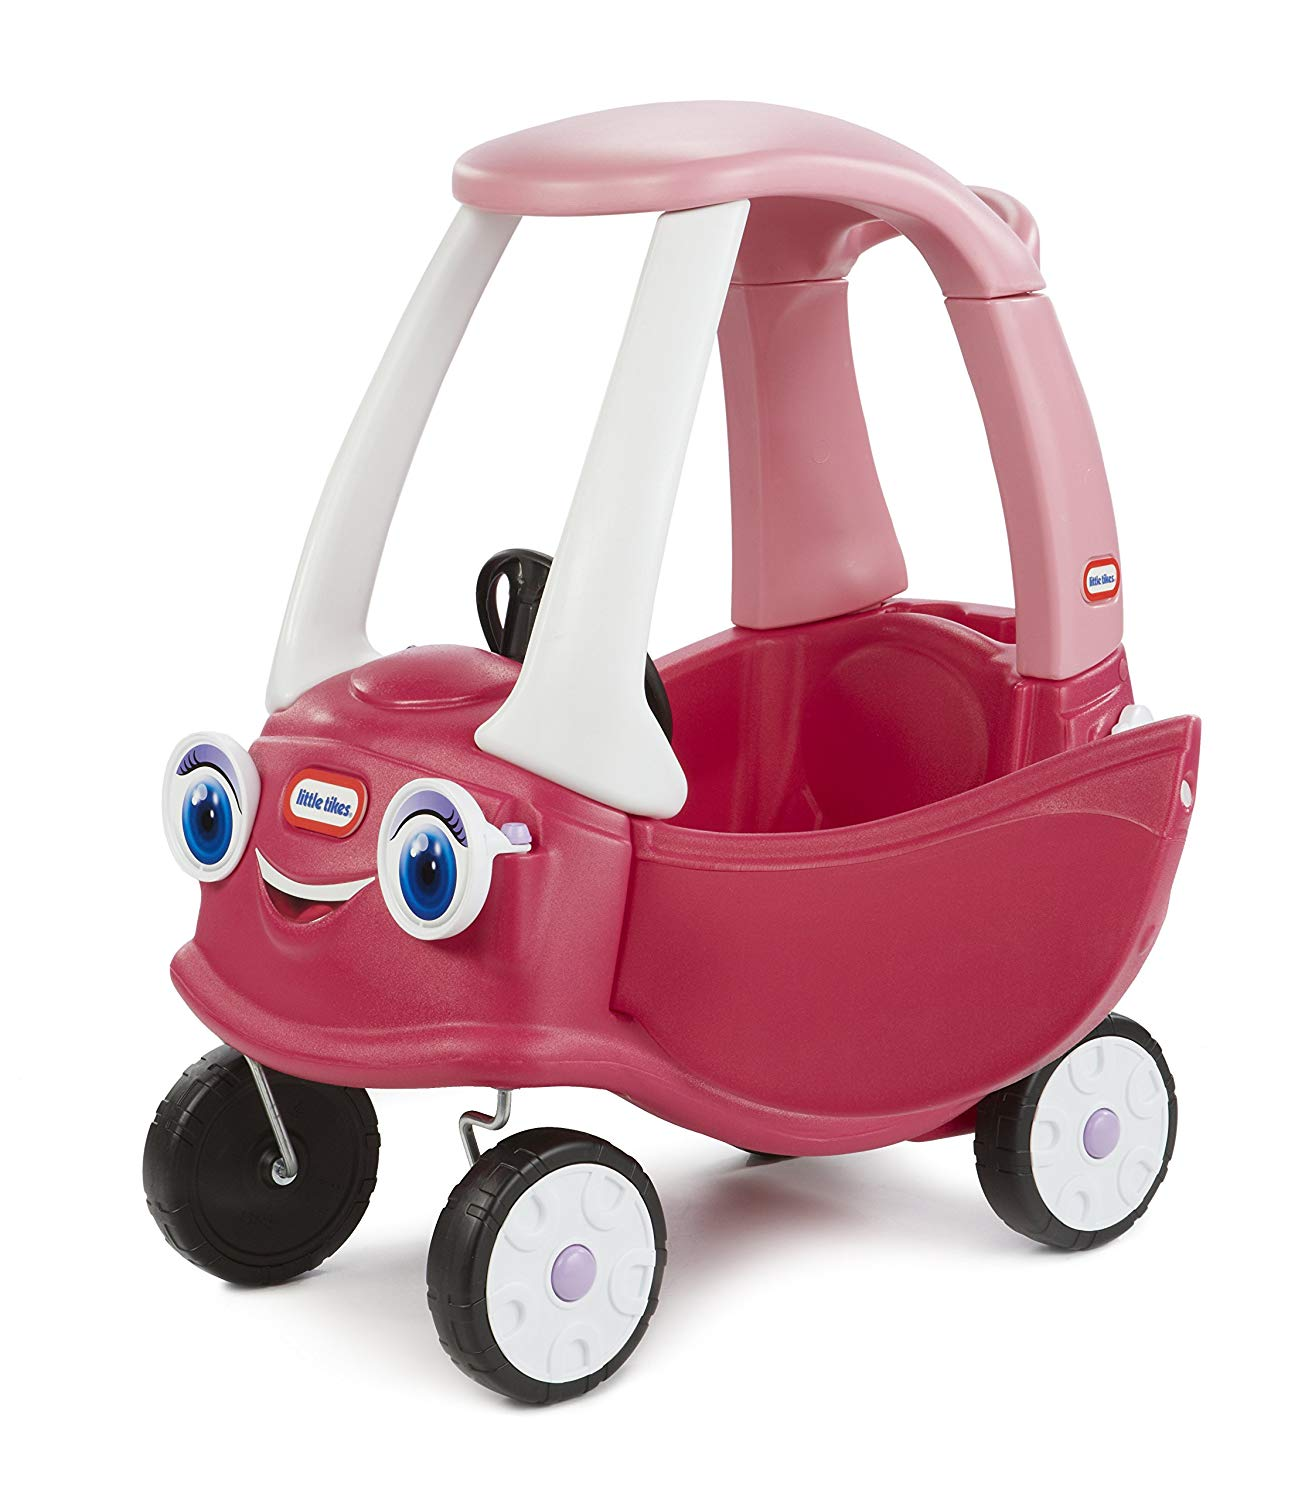 8. Little Tikes Princess Cozy Coupe